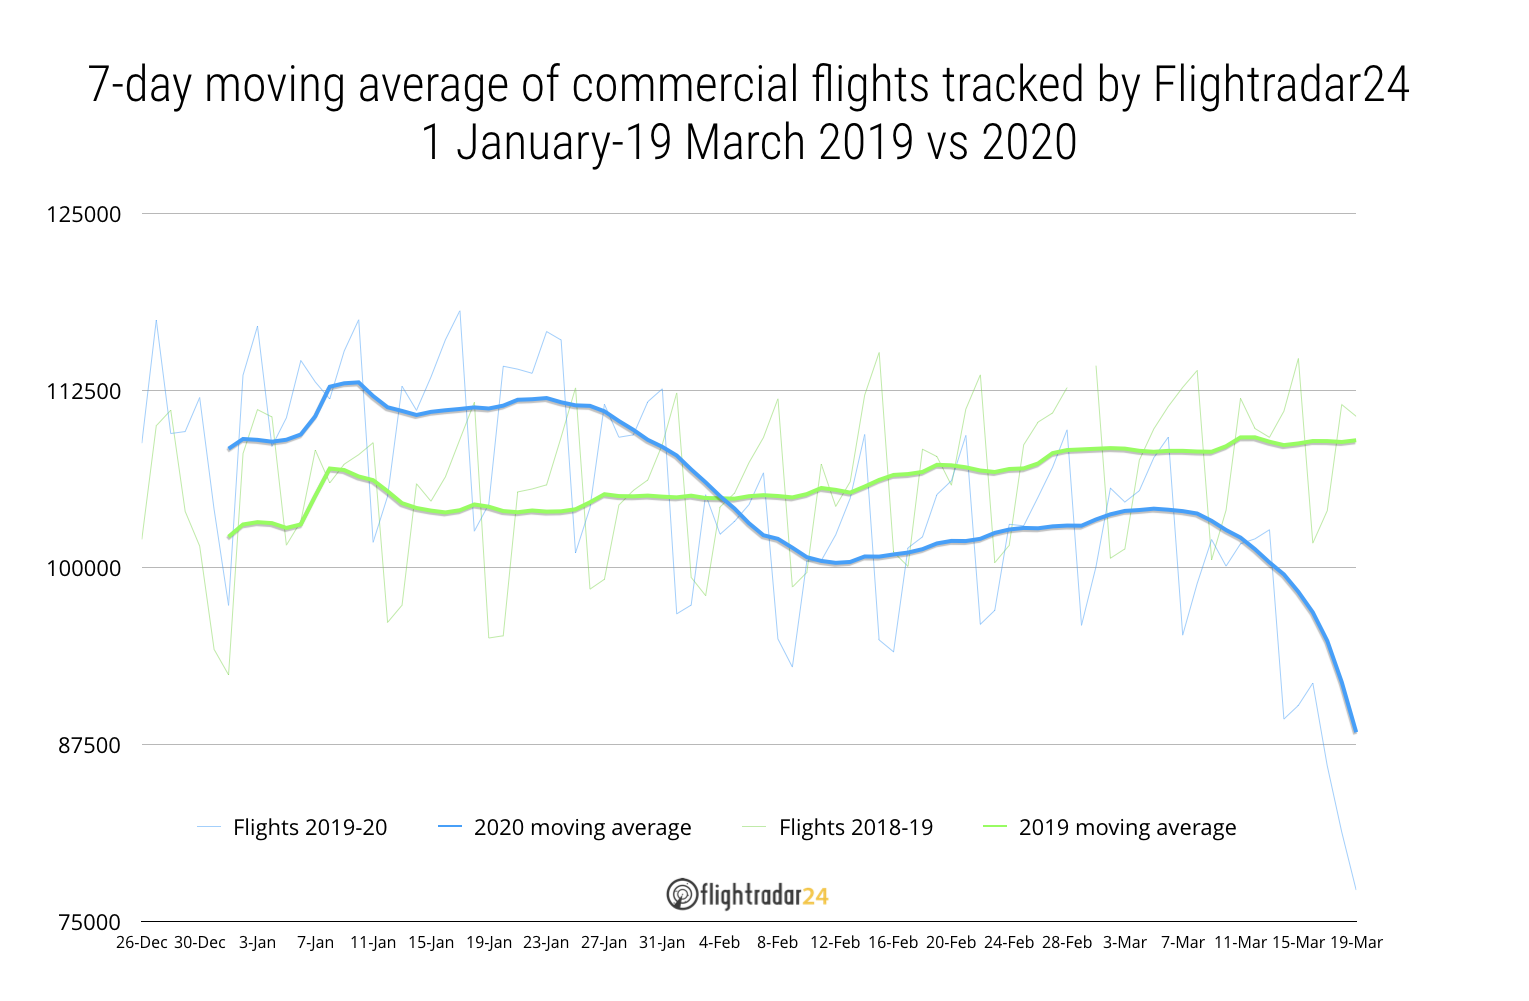 Commercial traffic 7-day moving average